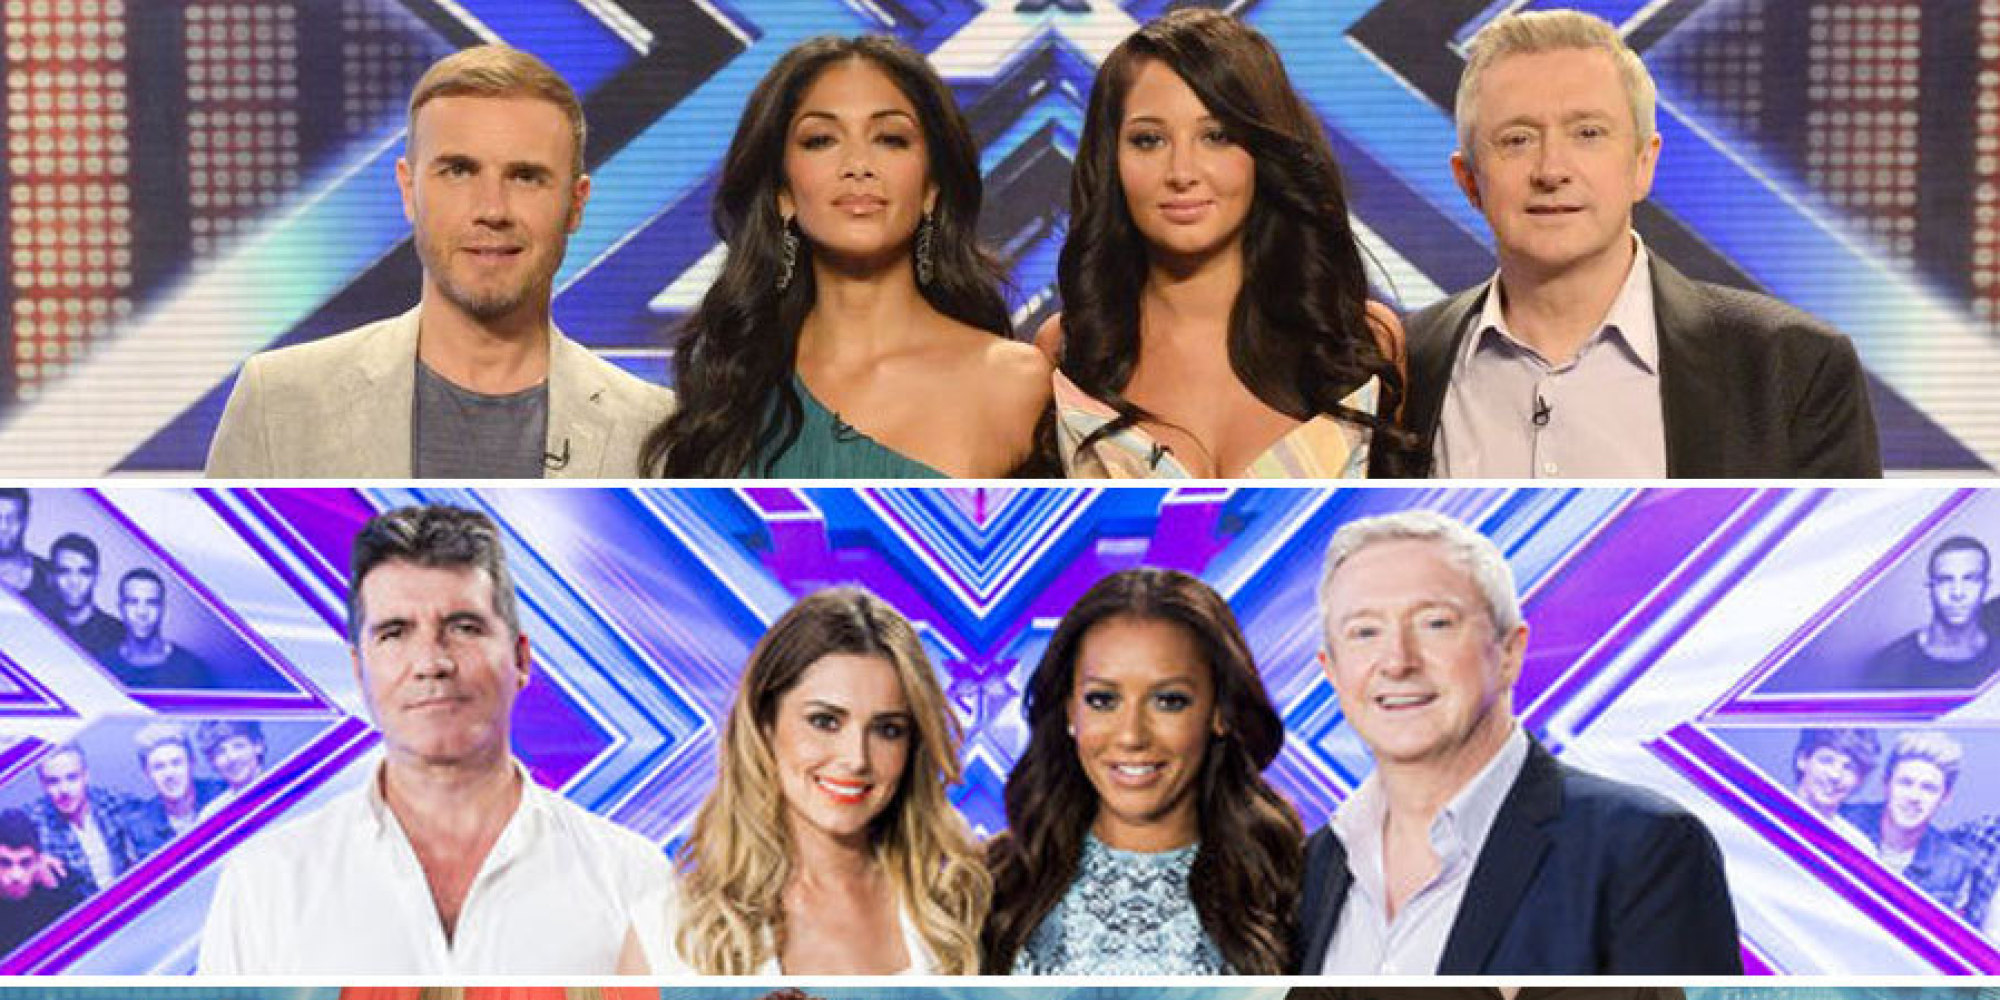 X Factor Judges 2016 Pictures to Pin on Pinterest - ThePinsta